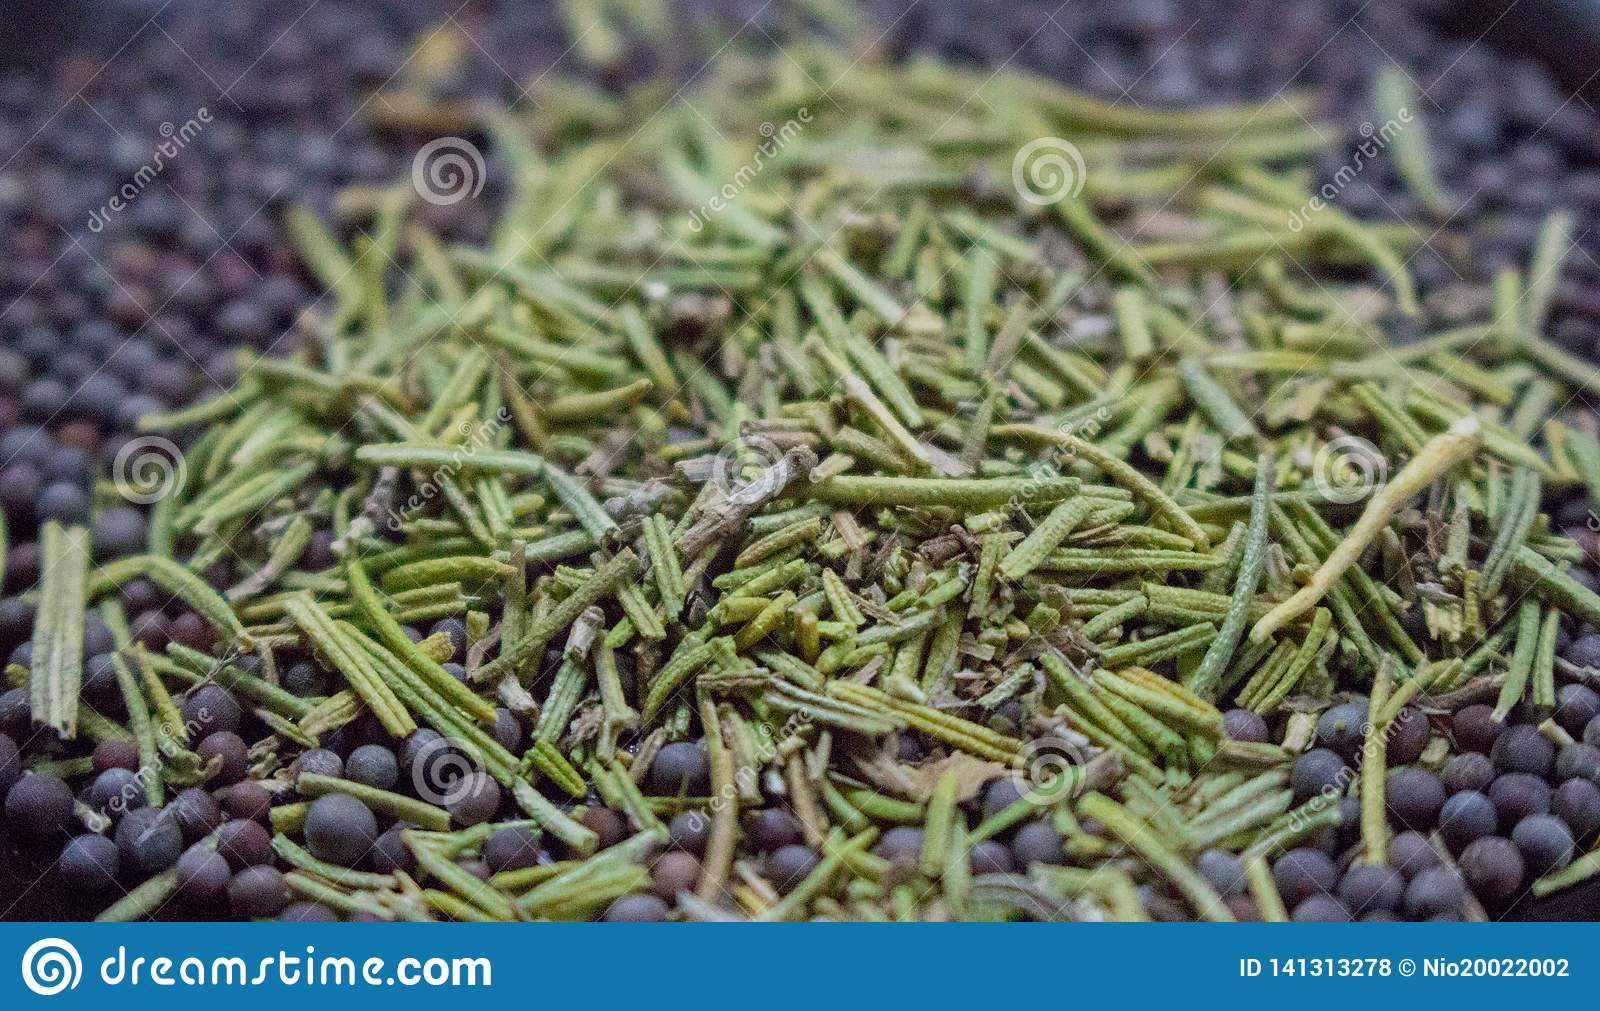 Dried rosemary with black mustard seeds closeup. Spices background. Aroma herbs and spices.